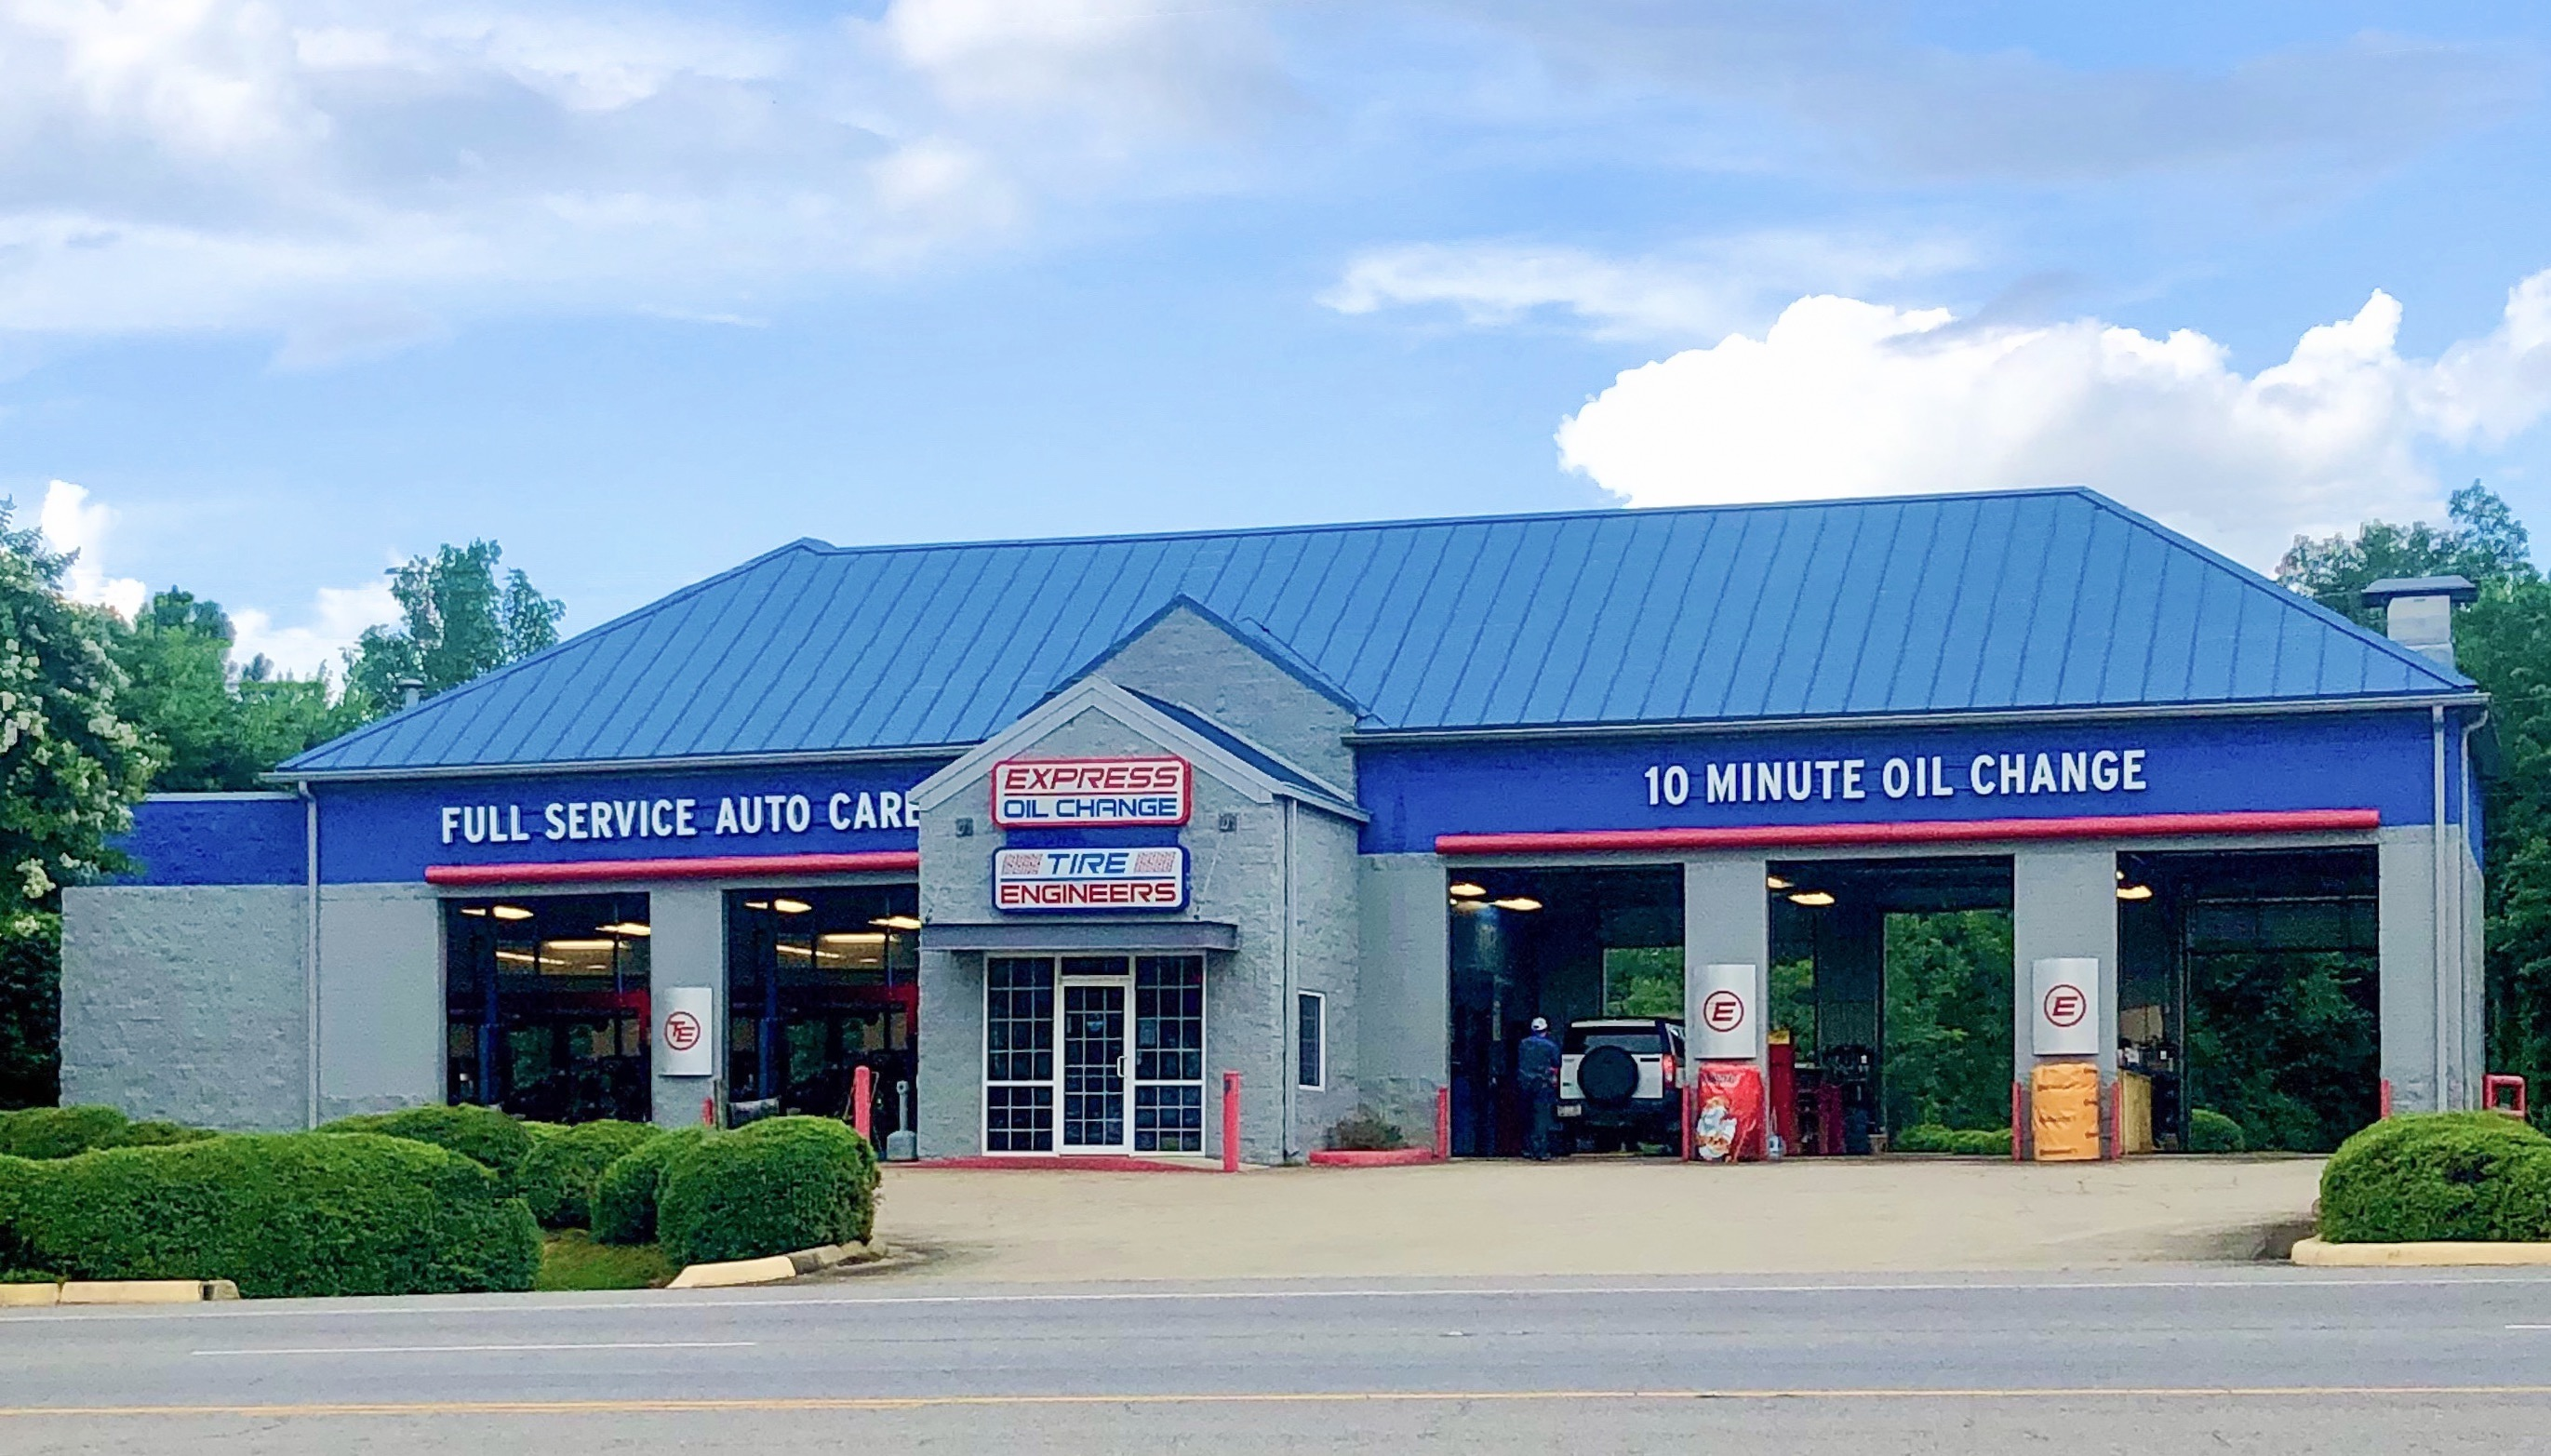 Express Oil Change & Tire Engineers at Pell City, AL - Pell City Marketplace store